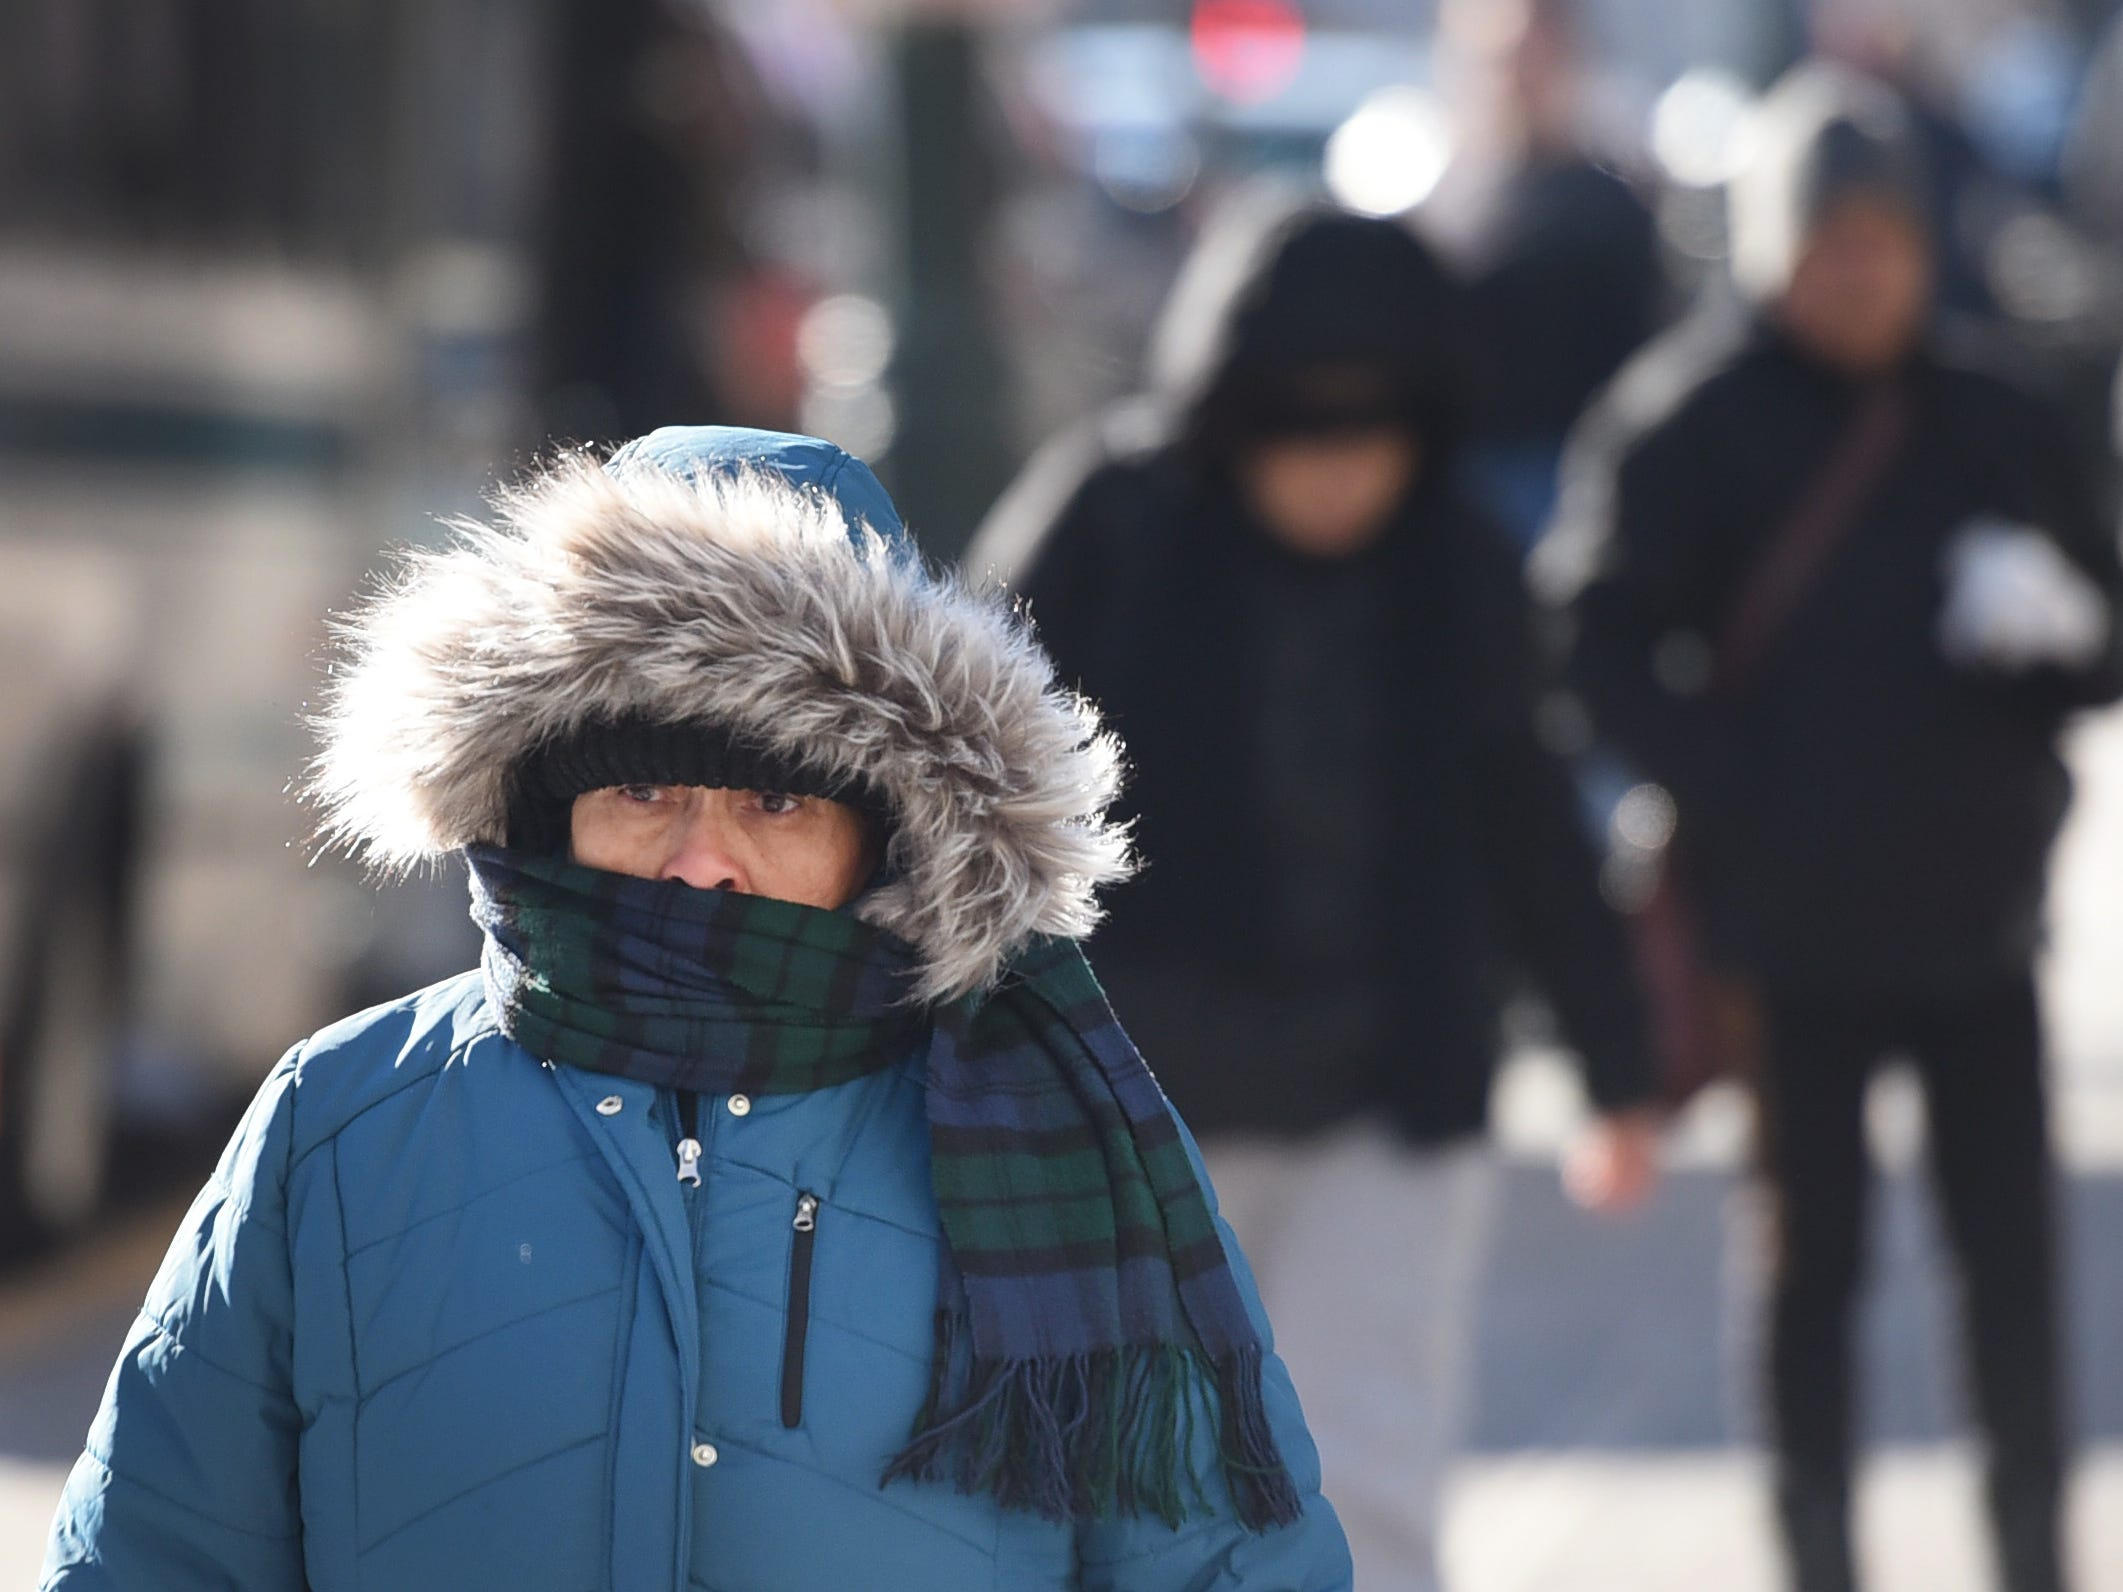 As the temperatures plummet, a woman braves the cold as she covers her face with a scarf in Paterson, NJ., Jan 30, 2019.